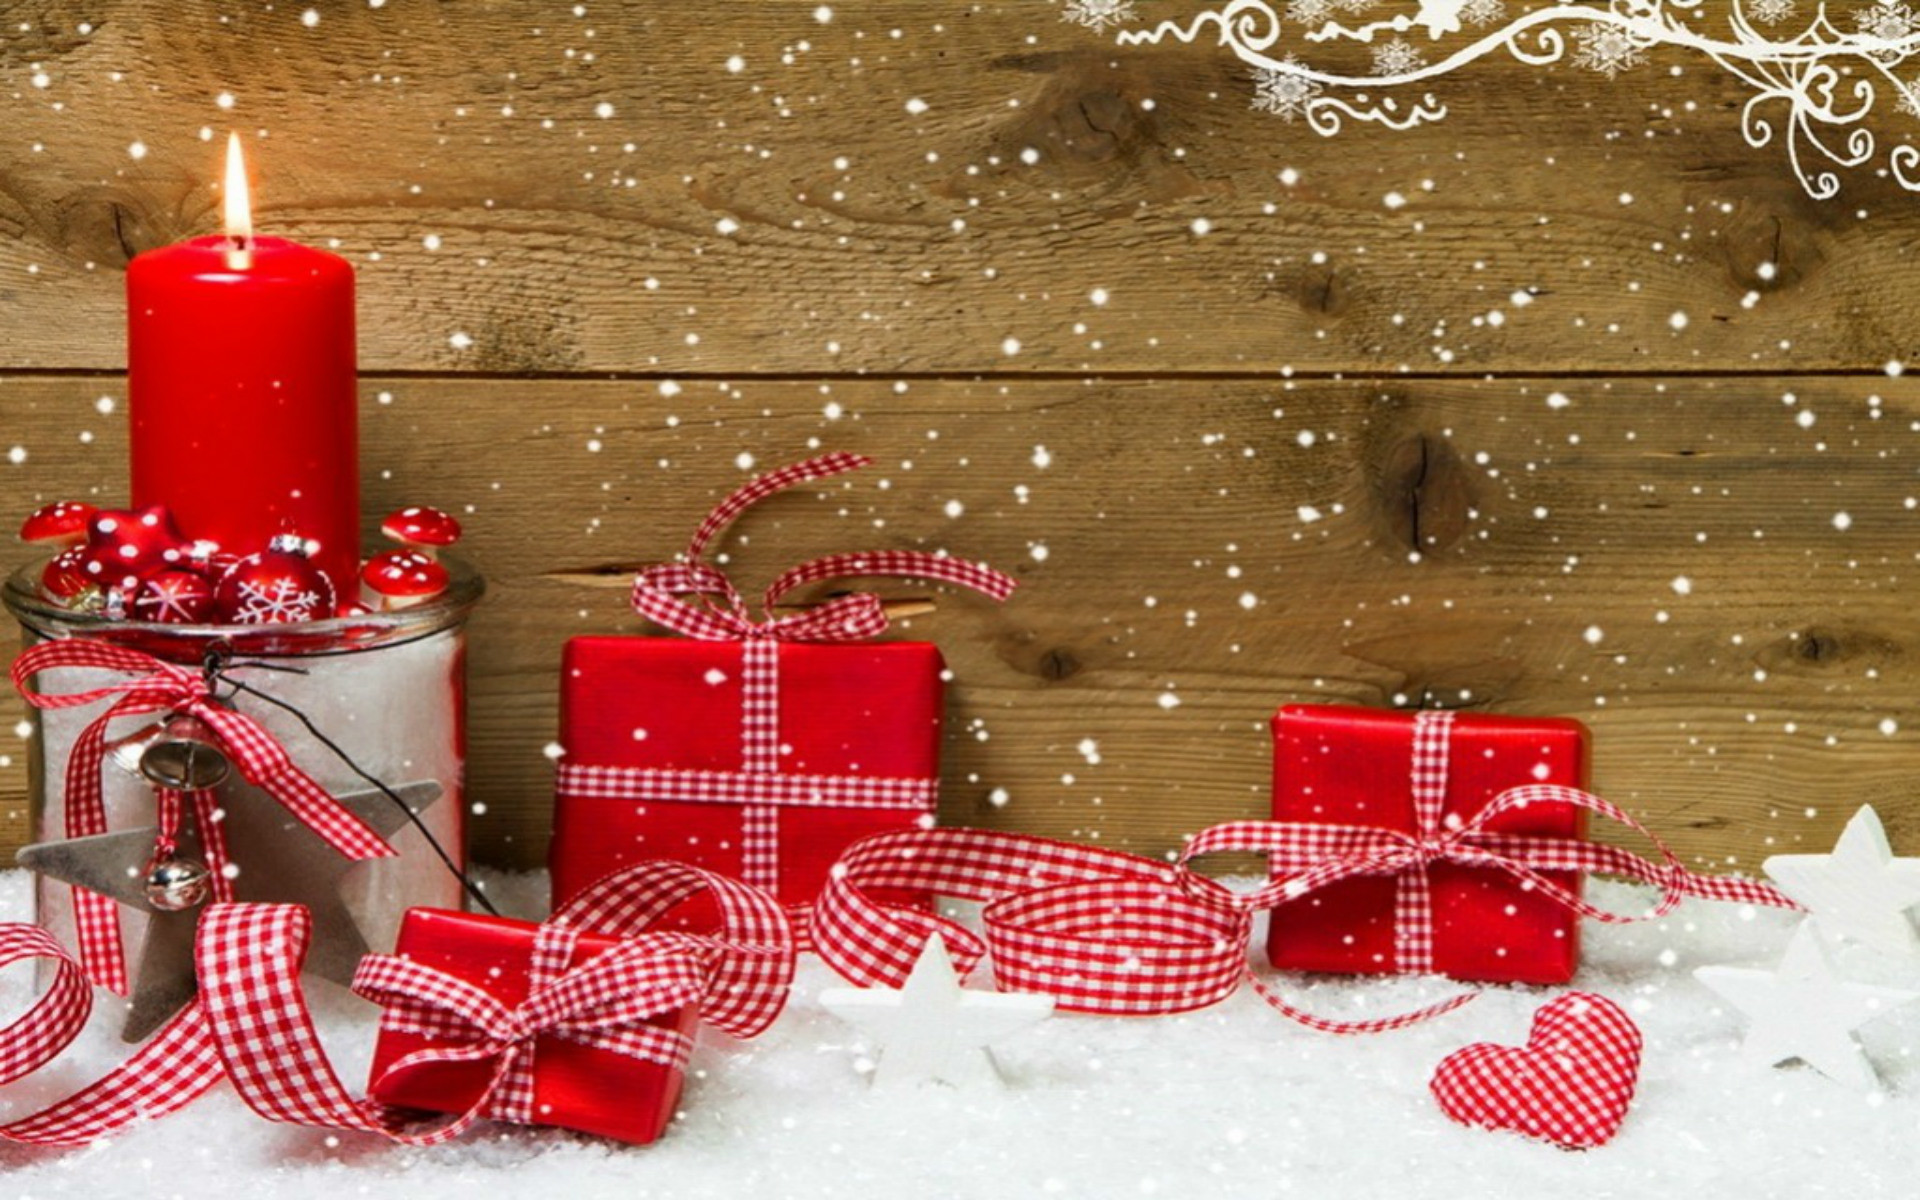 Wallpapers Christmas Desktop (69+ Background Pictures